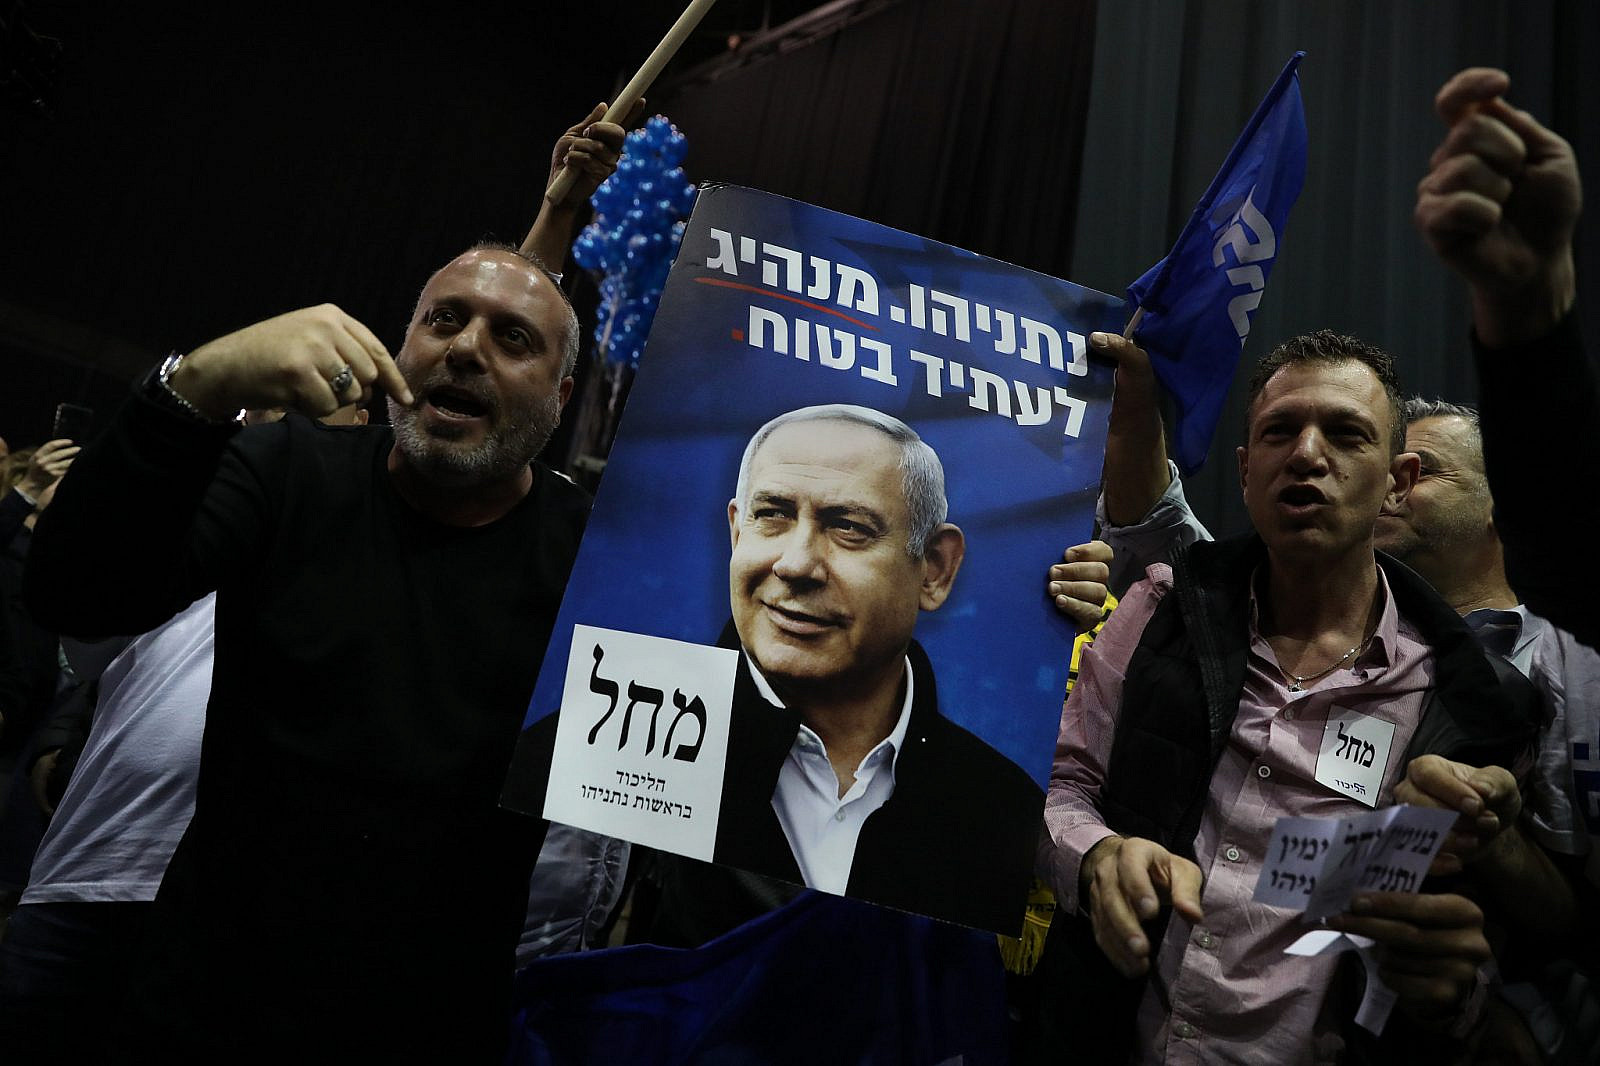 Likud supporters react to the results of the demo polls at the Likud headquarters on elections night in Tel Aviv, March 2, 2020. (Olivier Fitoussi/Flash90)